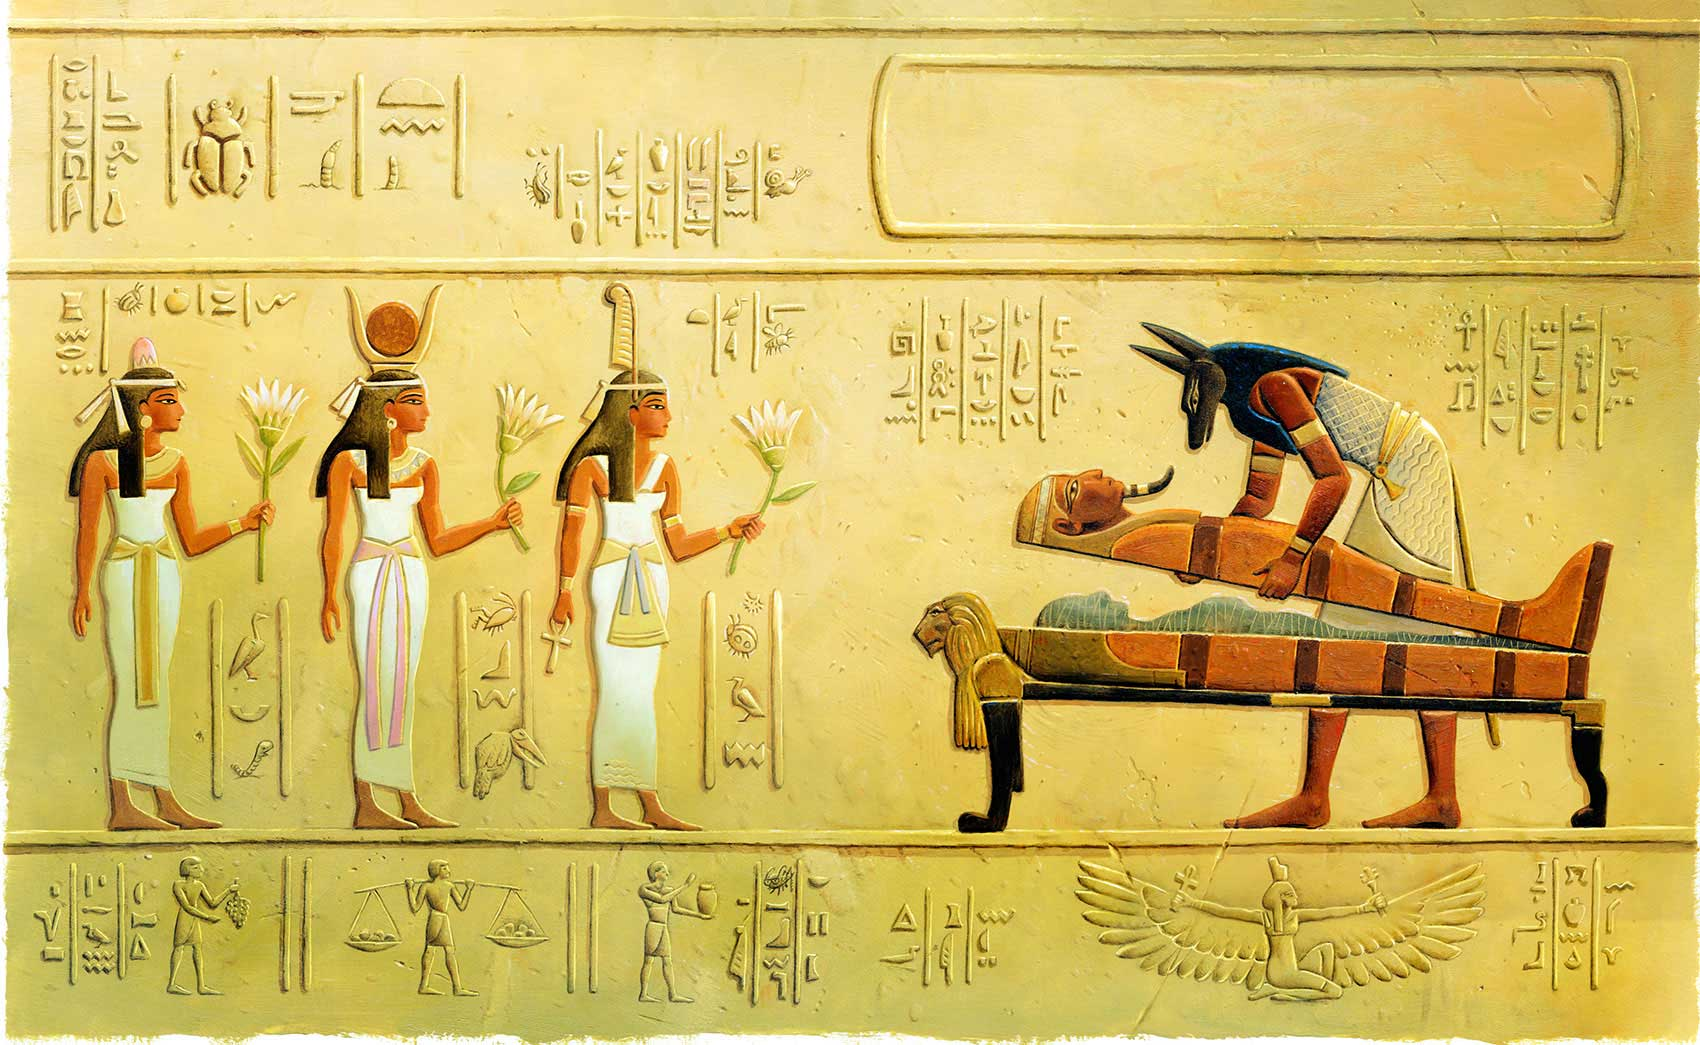 illustration-Cartoons-and-Characters_Egyptians-in-Hieroglyphics-2-Mike-Jaroszko